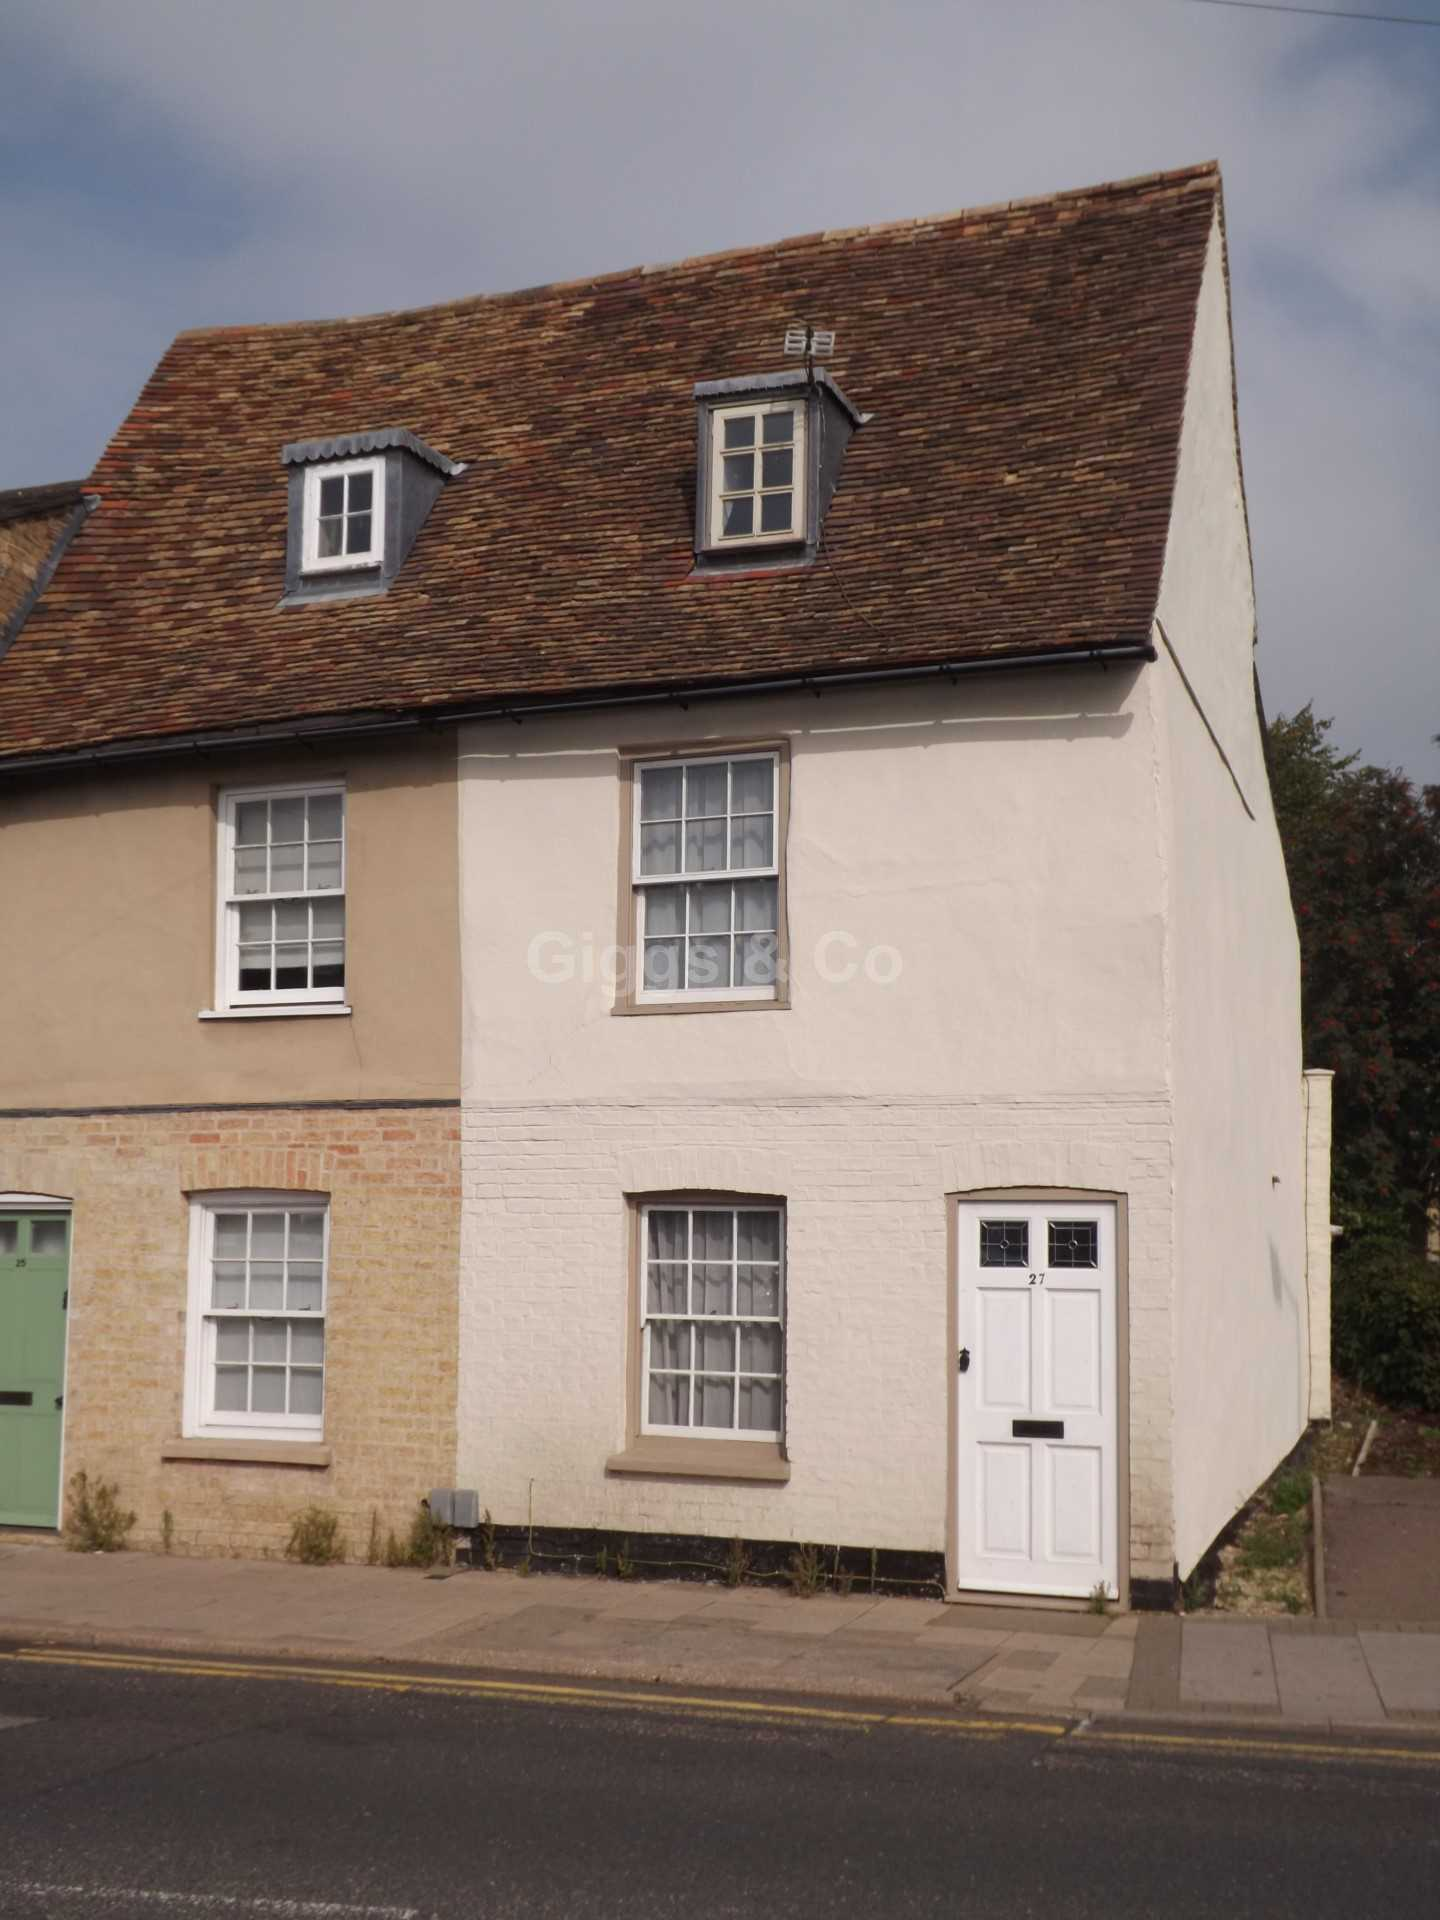 2 bed end-of-terrace-house to rent in Cambridge Street, St Neots - Property Image 1